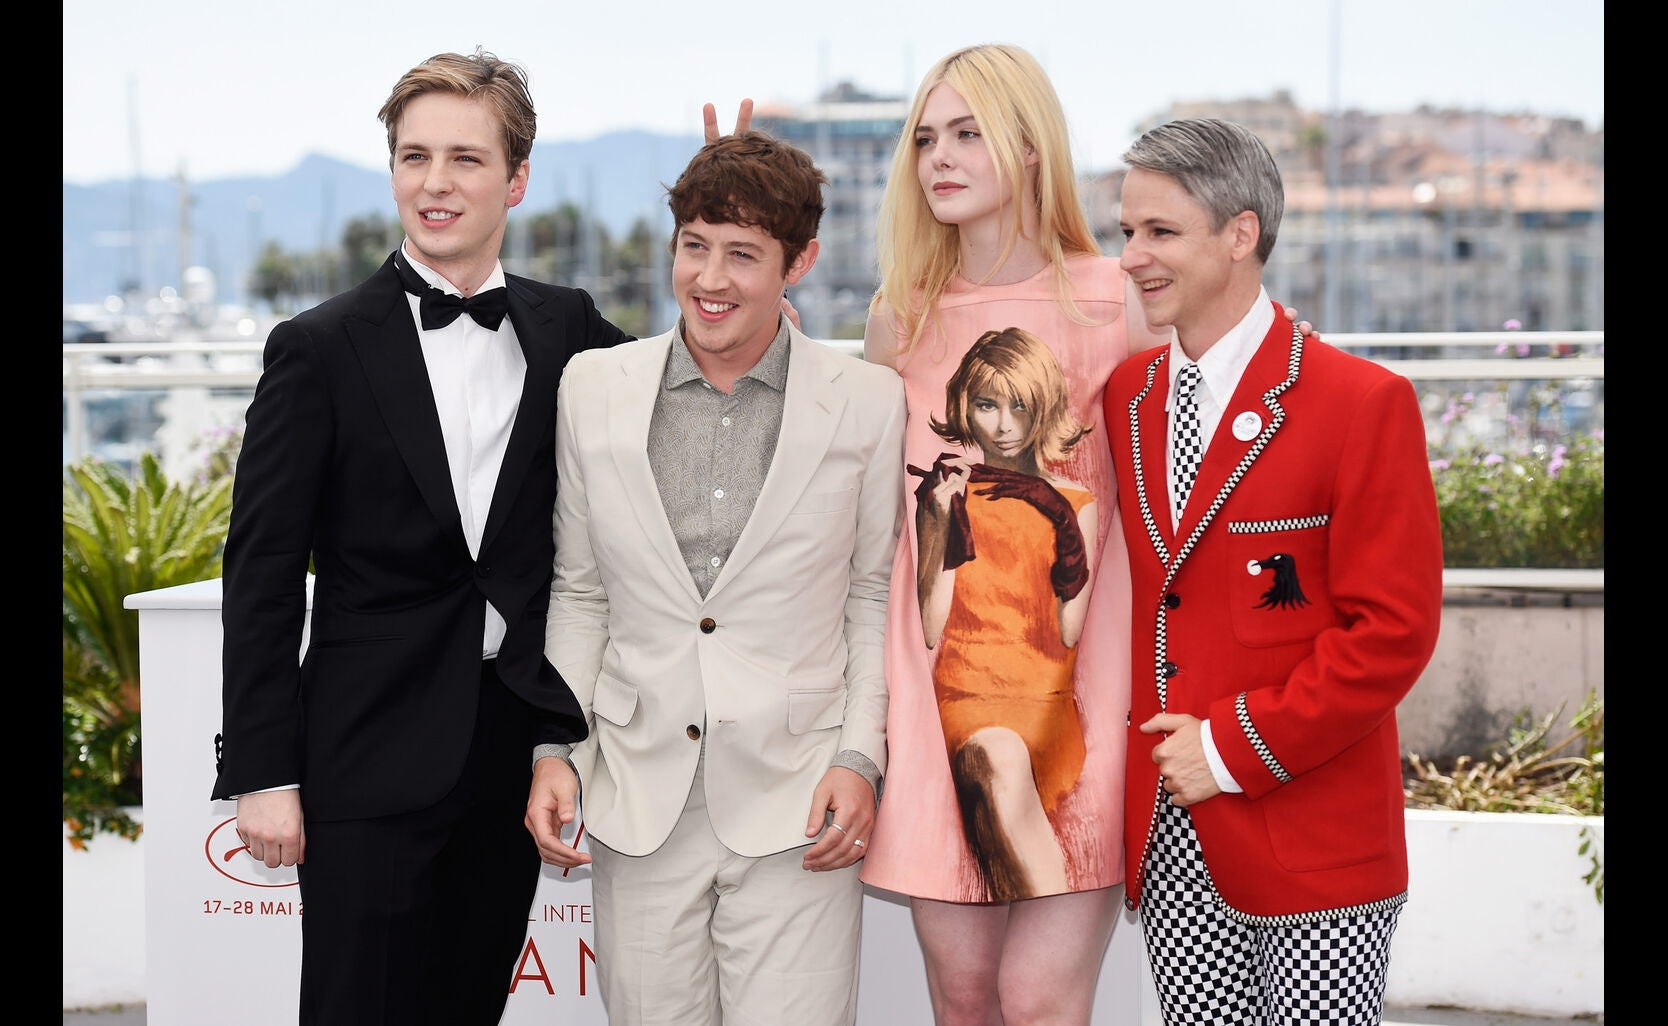 A.J. Lewis, Alex Sharp, Elle Fanning and director John Cameron Mitchell